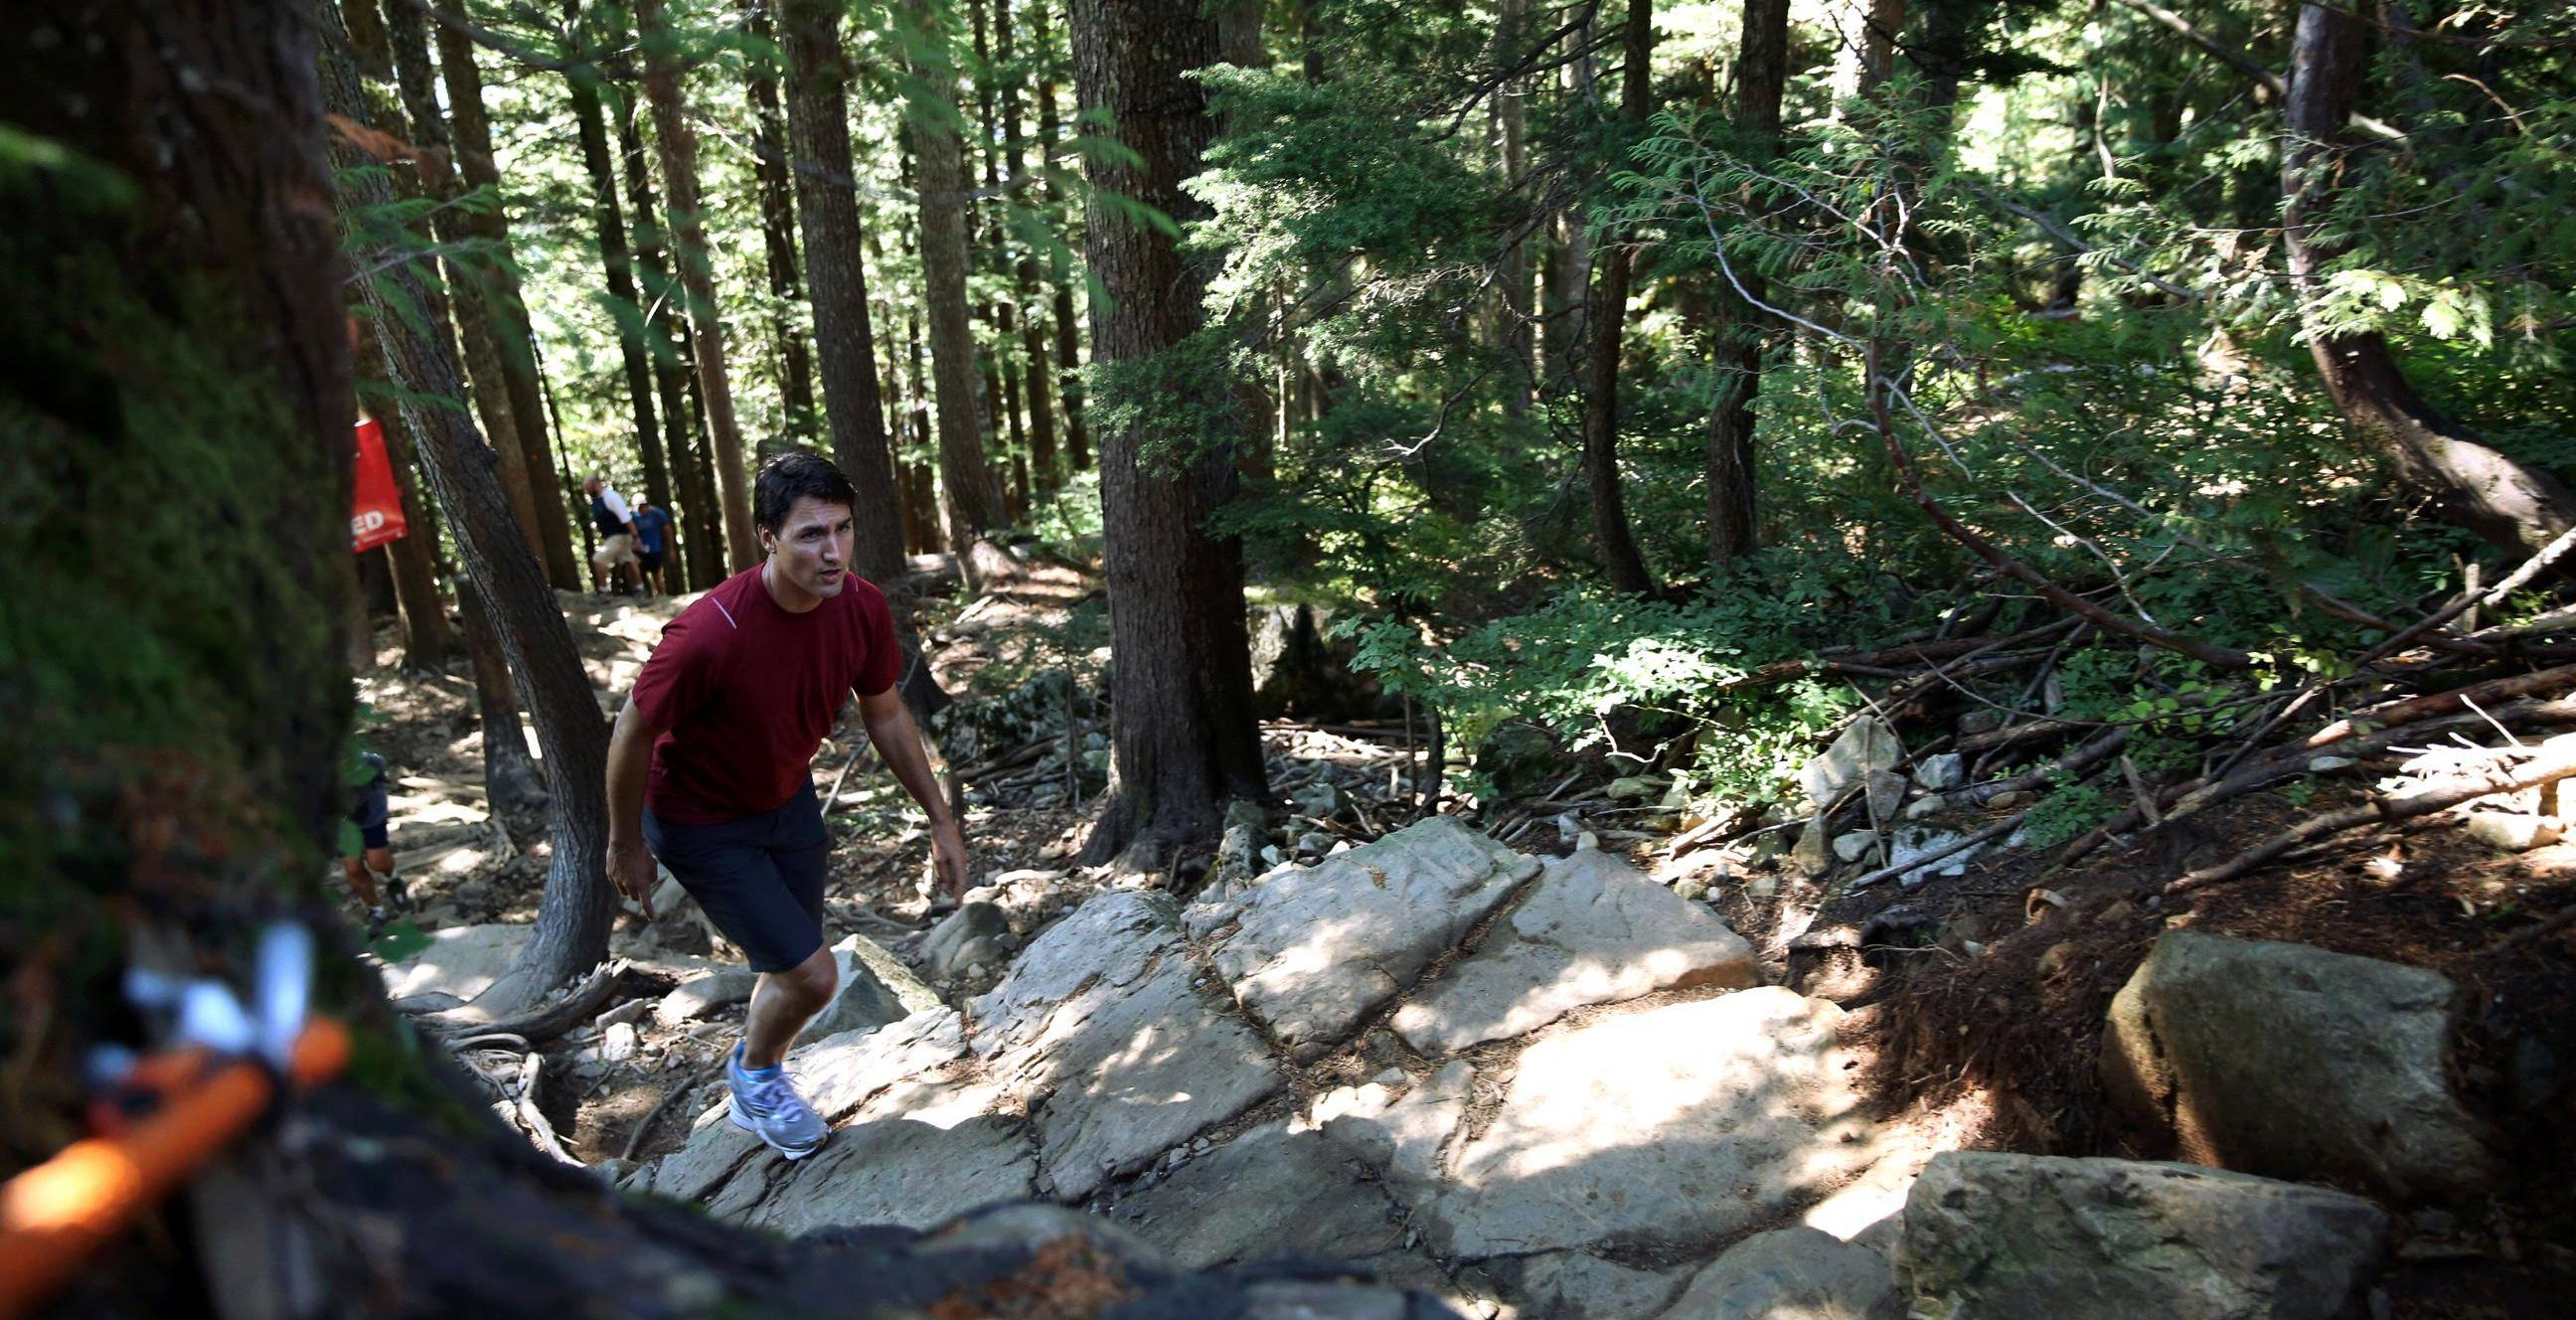 Justin Trudeau completes Grouse Grind with impressive time (PHOTOS)